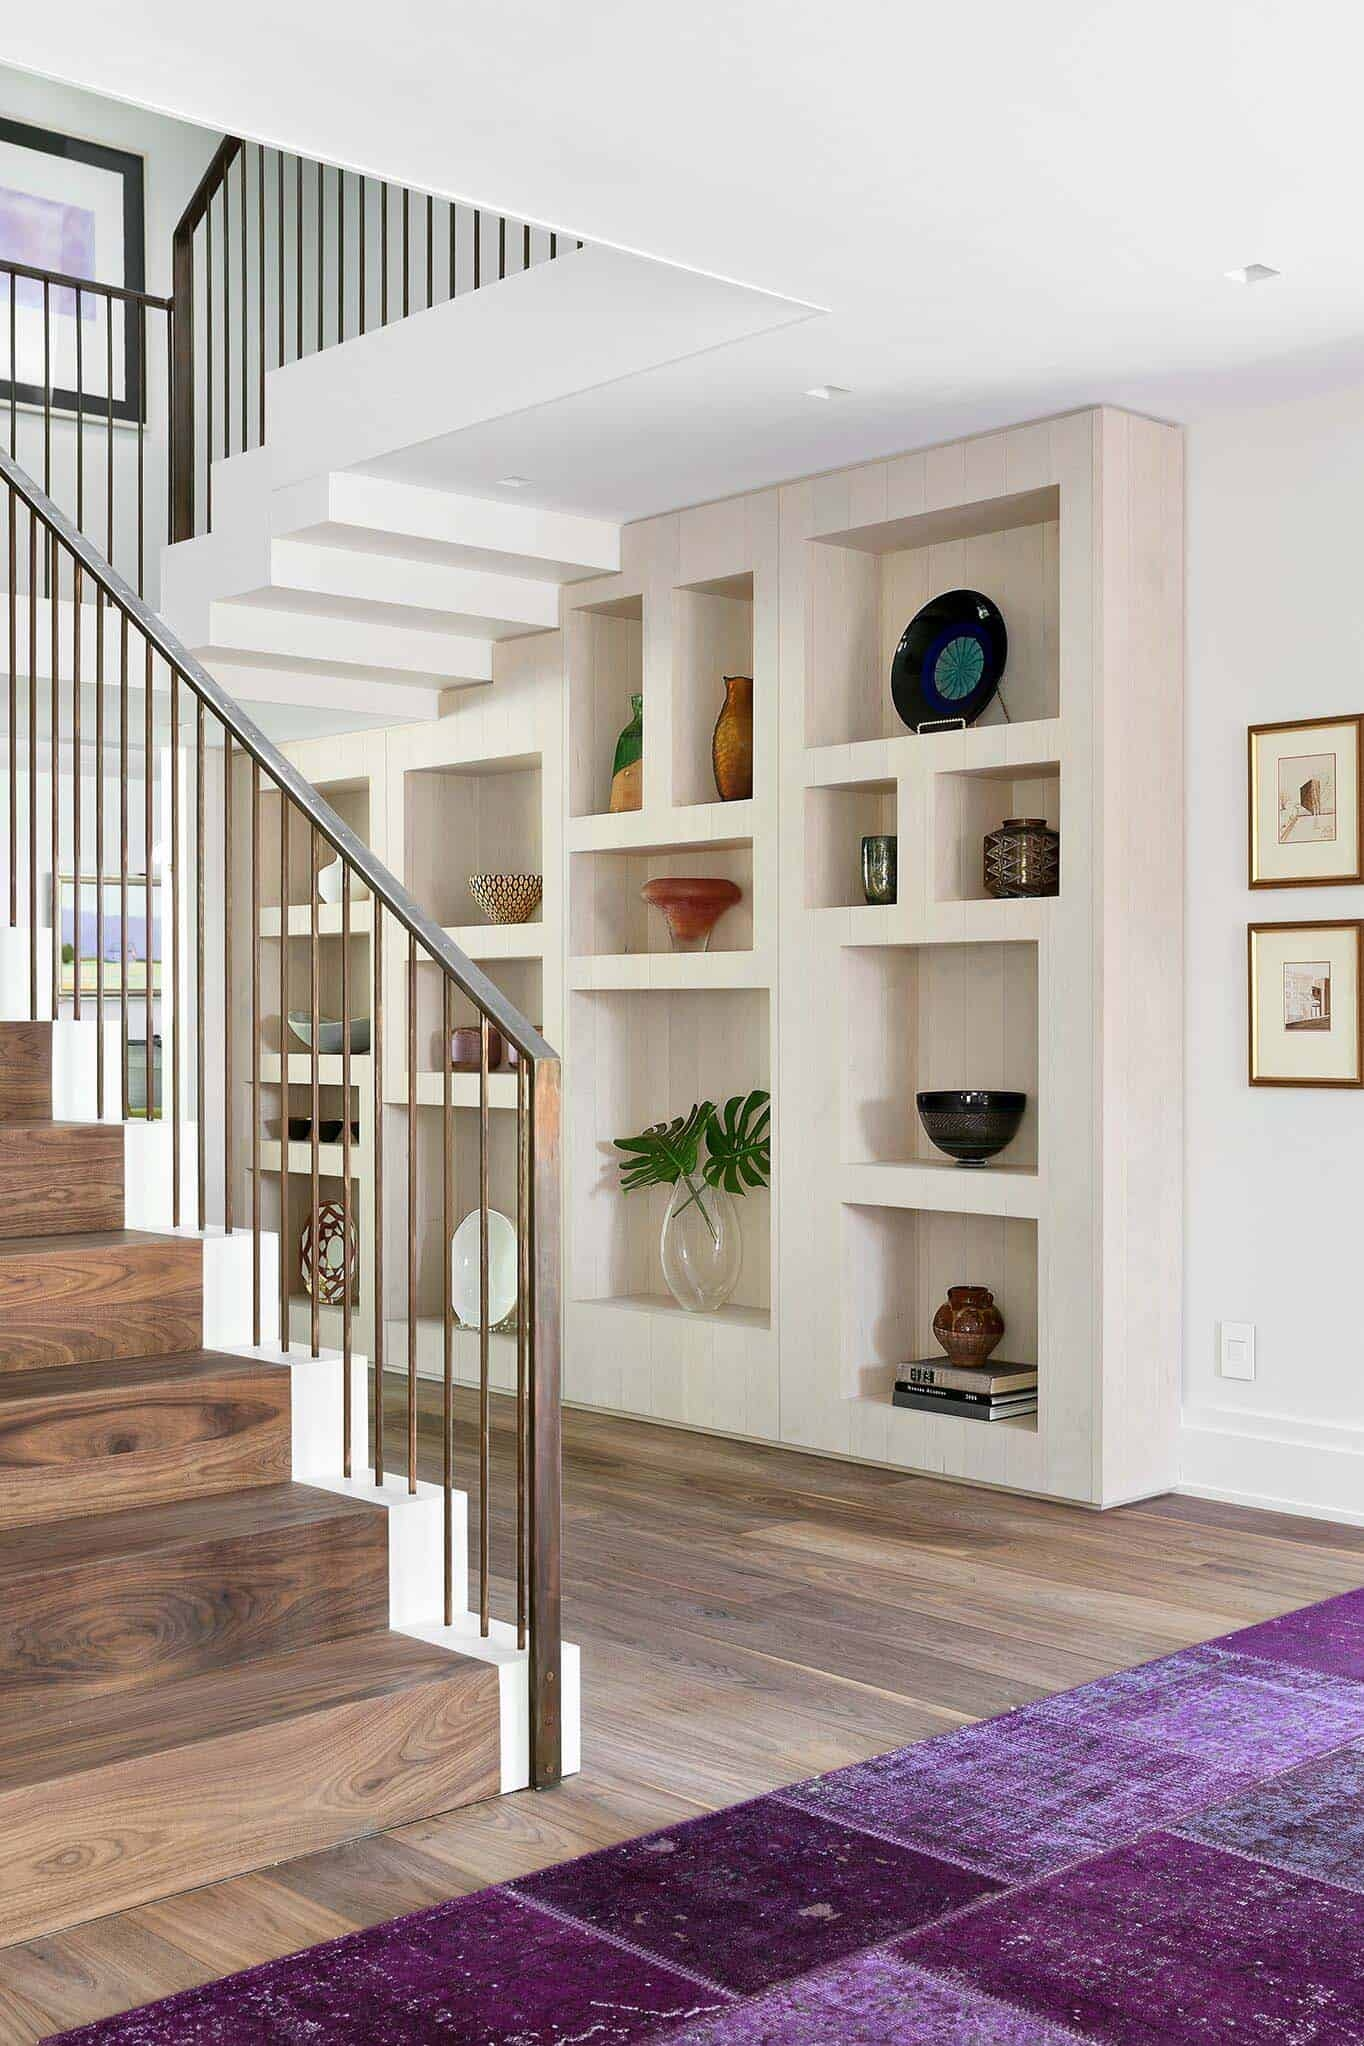 Stunning Renovation Of An English Cottage Style Home In New Jersey | Stairs Style For Home | Creative | Inside | Spiral | Country Cottage | Living Room